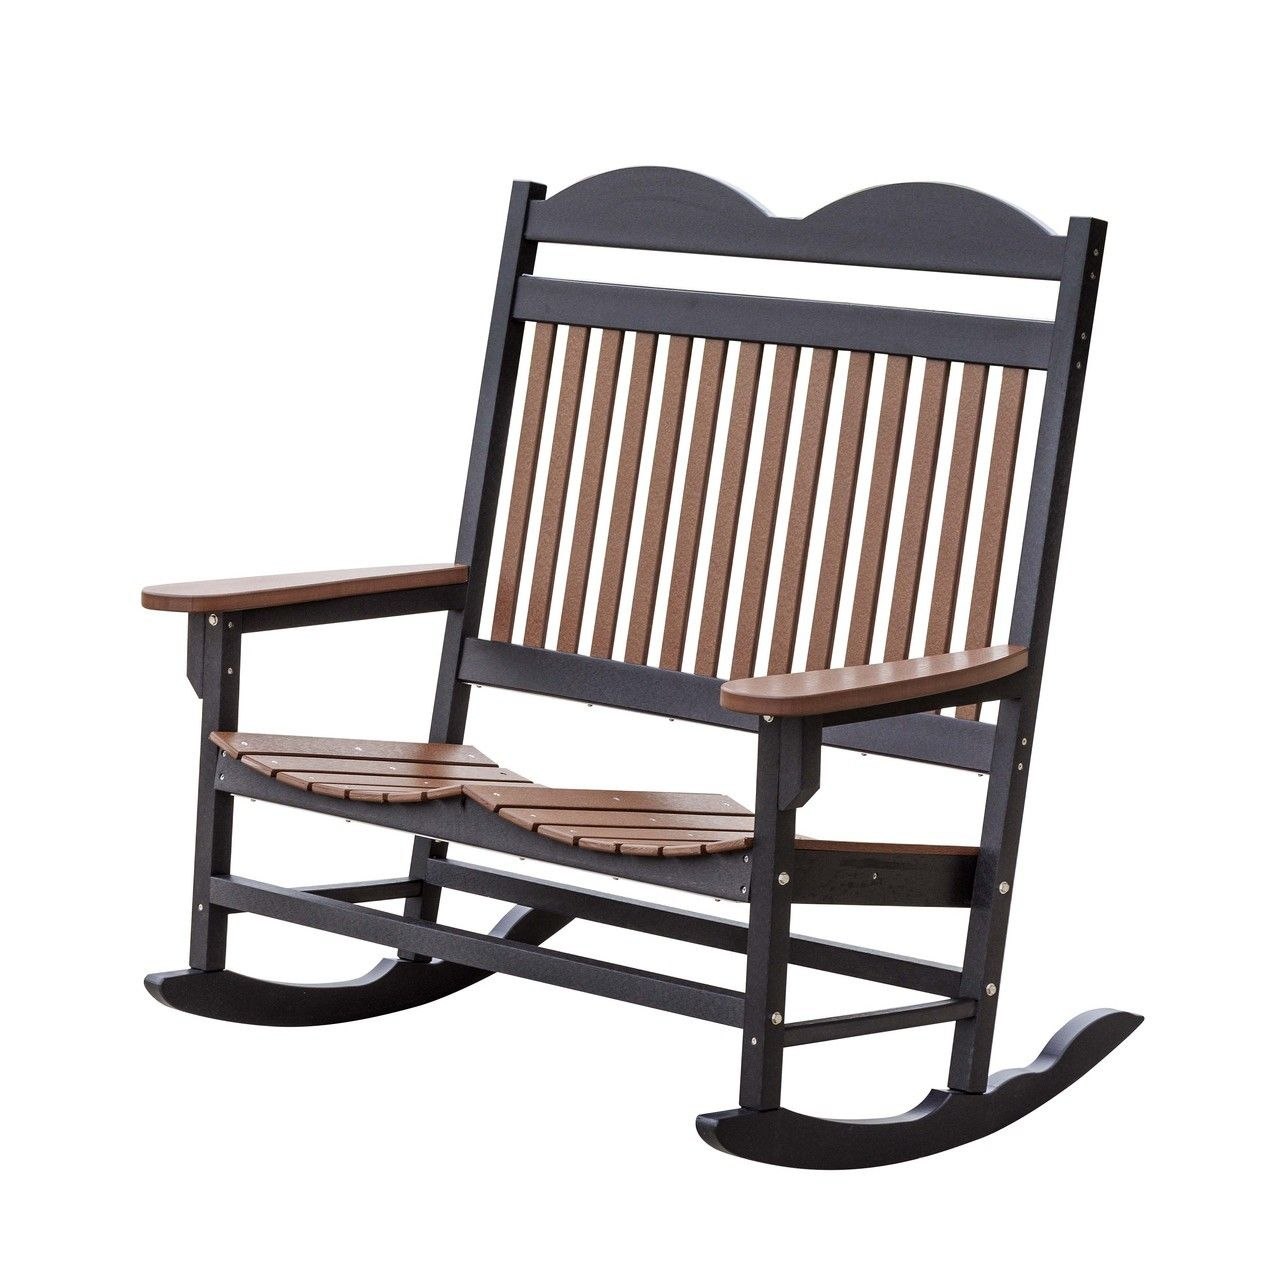 17 Colors Double The Fun In This Rocker For 2 The Perfect Rocking Chair The Ideal Chair For Your M Double Rocking Chair Rocker Chairs Outdoor Rocking Chairs